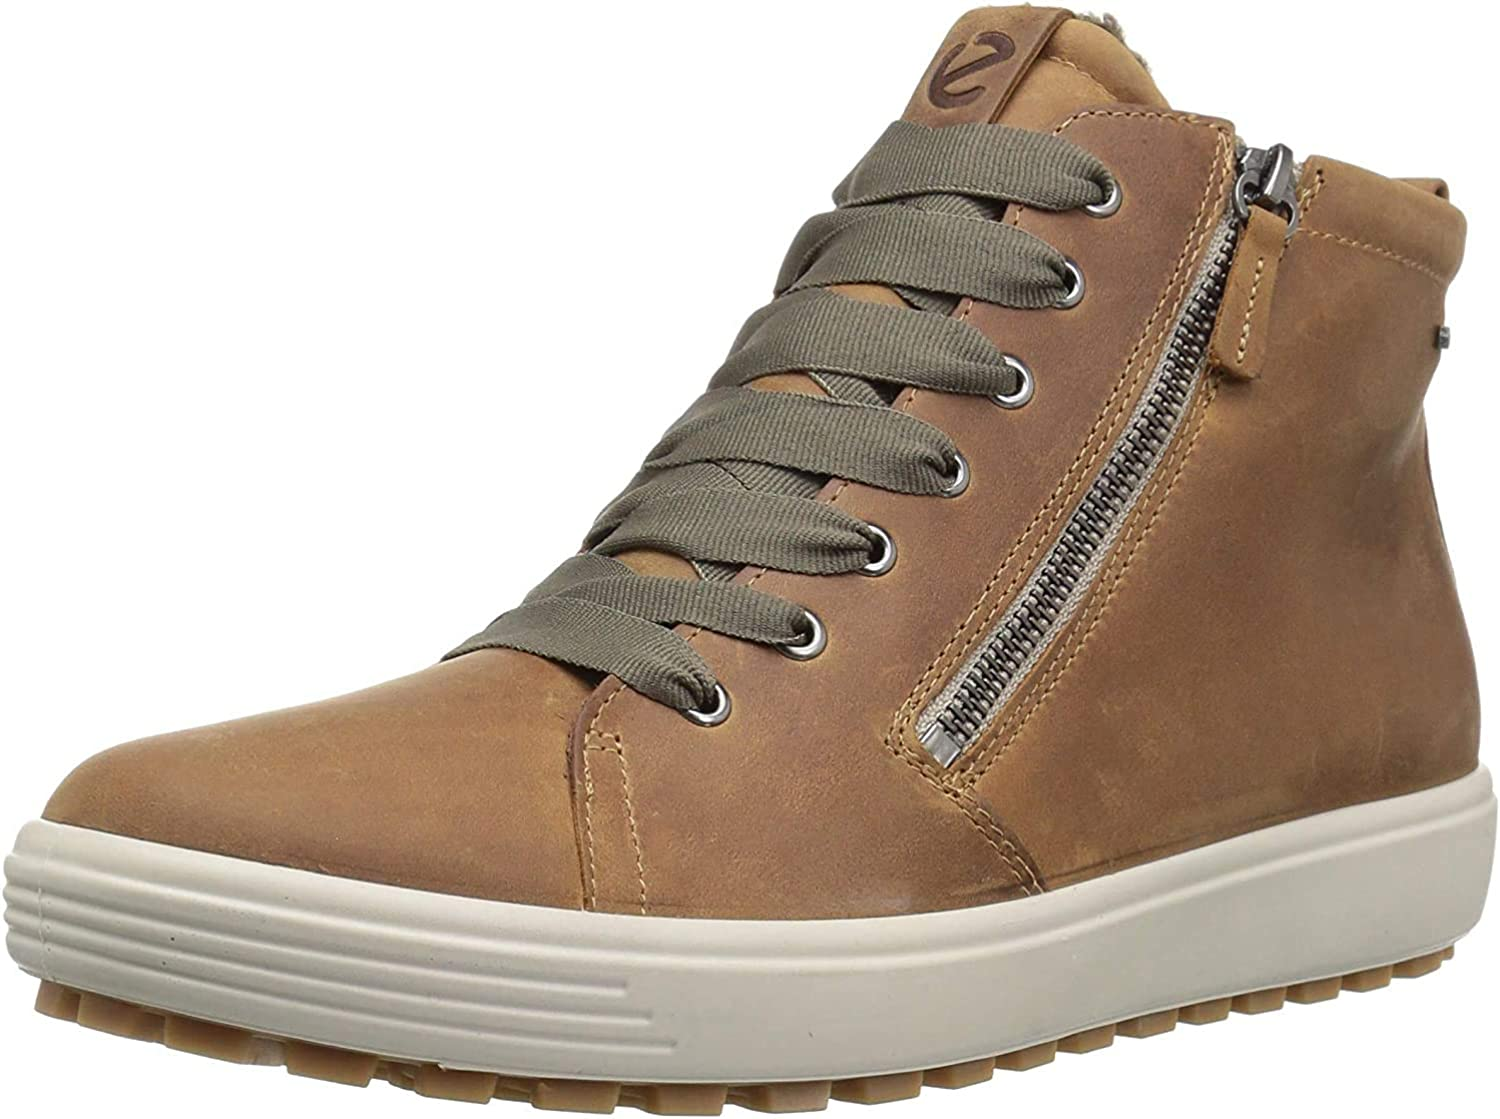 Soft 7 Tred GTX Hi Ankle Boots